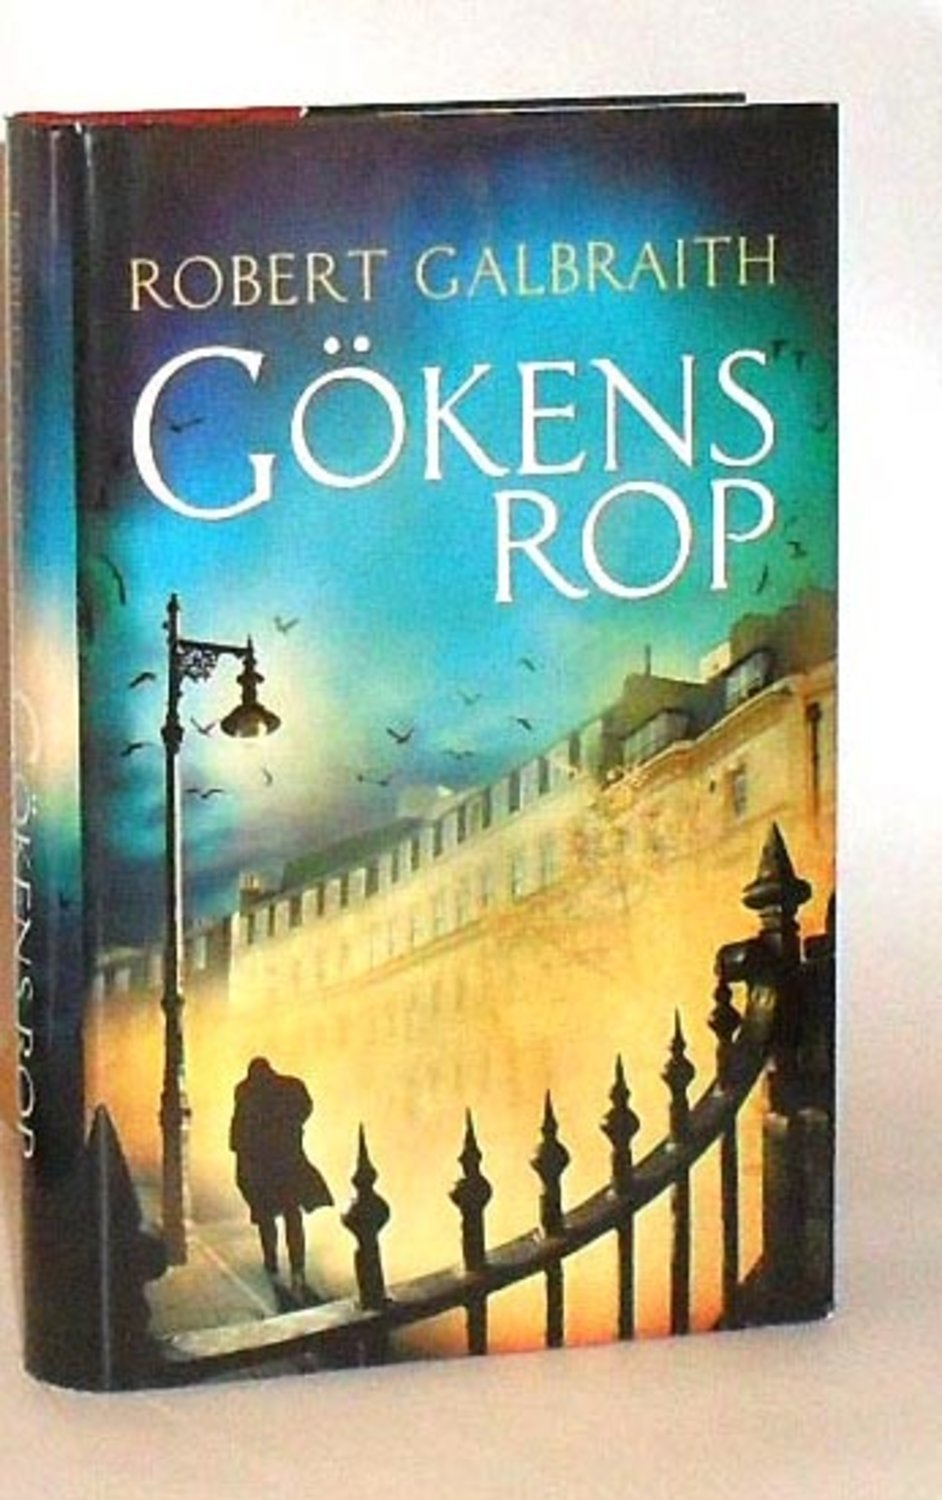 Robert Galbraith : Gökens rop